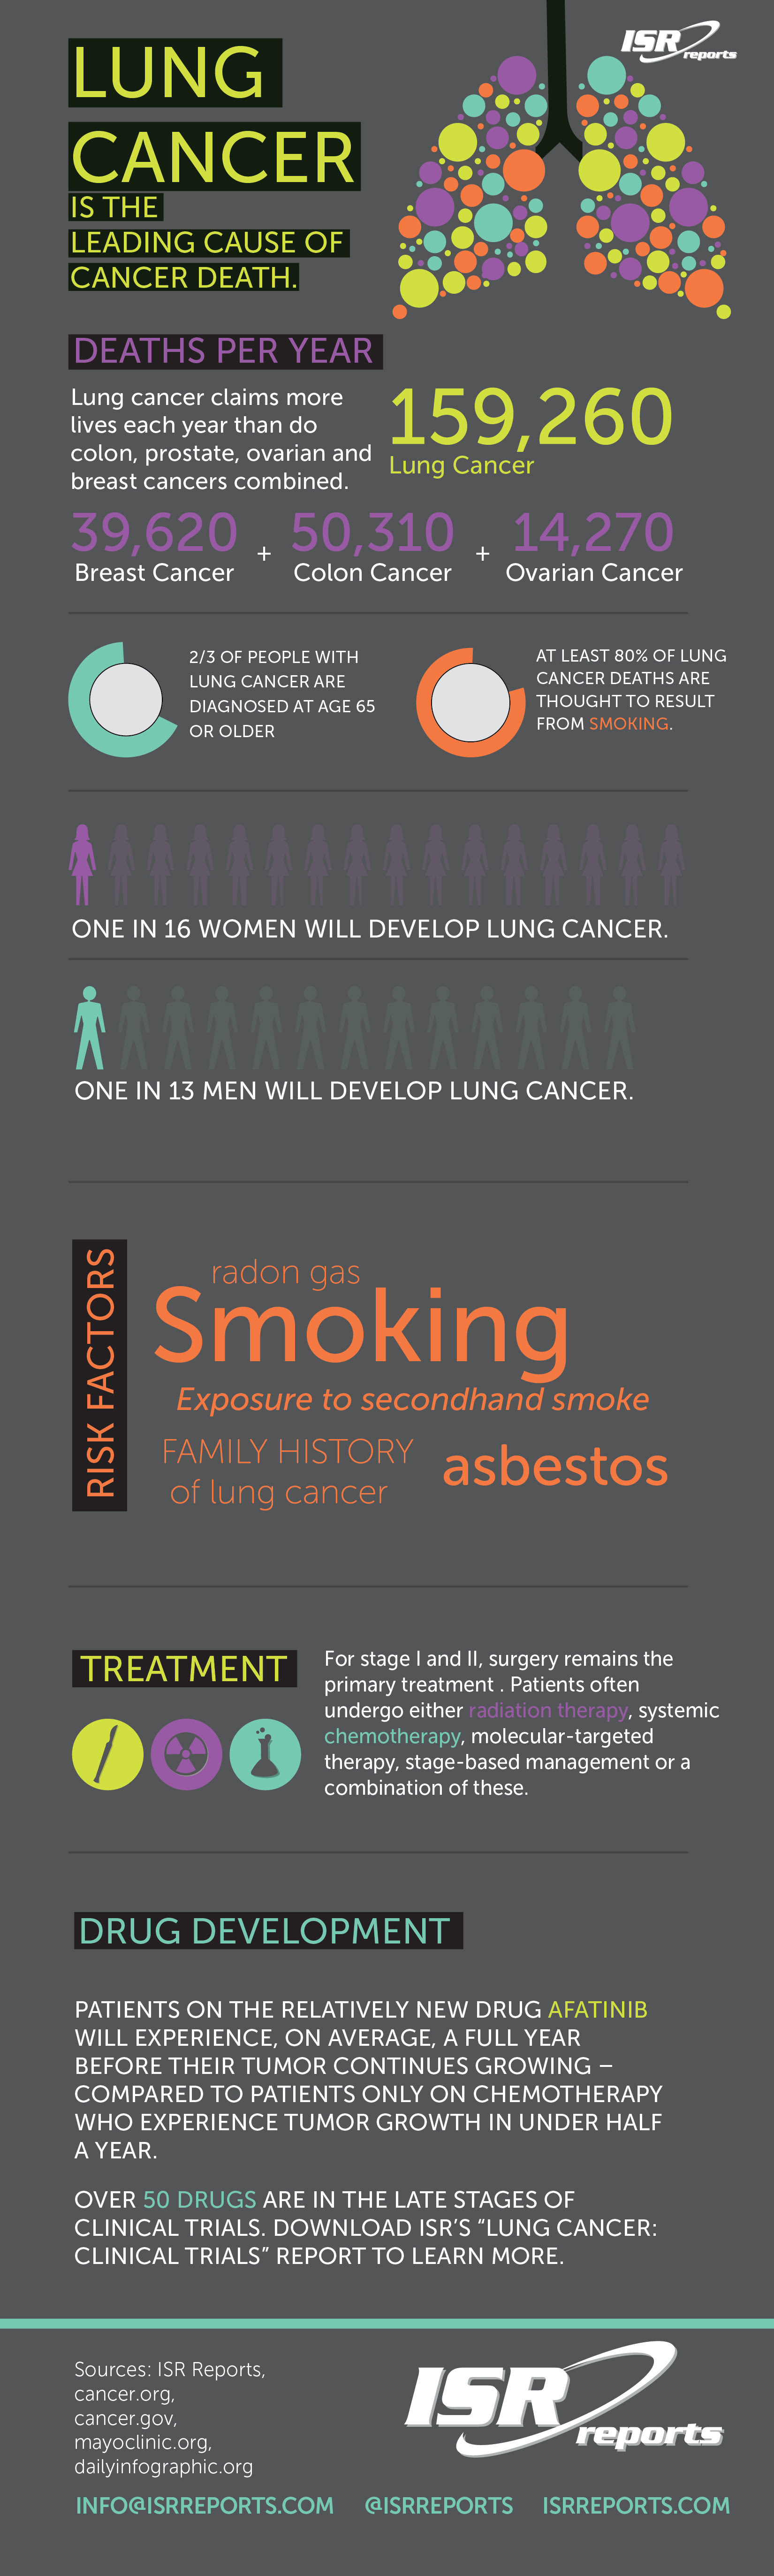 Infographic: Lung Cancer: The Leading Cause of Cancer Death